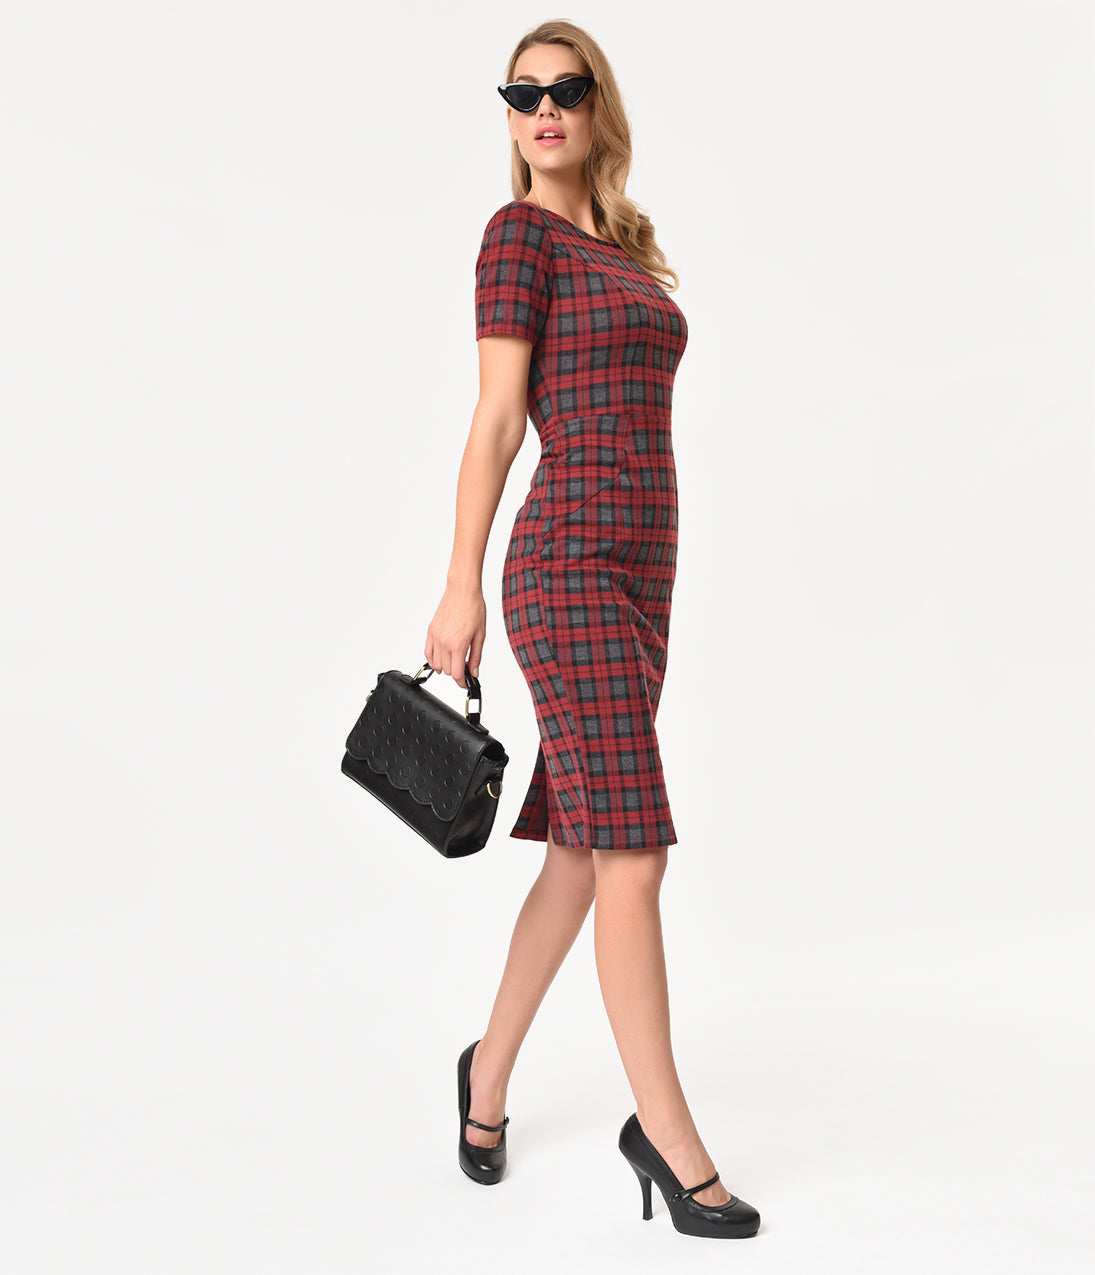 1960s Dresses | 60s Dresses Mod, Mini, Jackie O, Hippie Unique Vintage 1960S Style Burgundy Plaid Short Sleeve Mod Wiggle Dress $58.00 AT vintagedancer.com